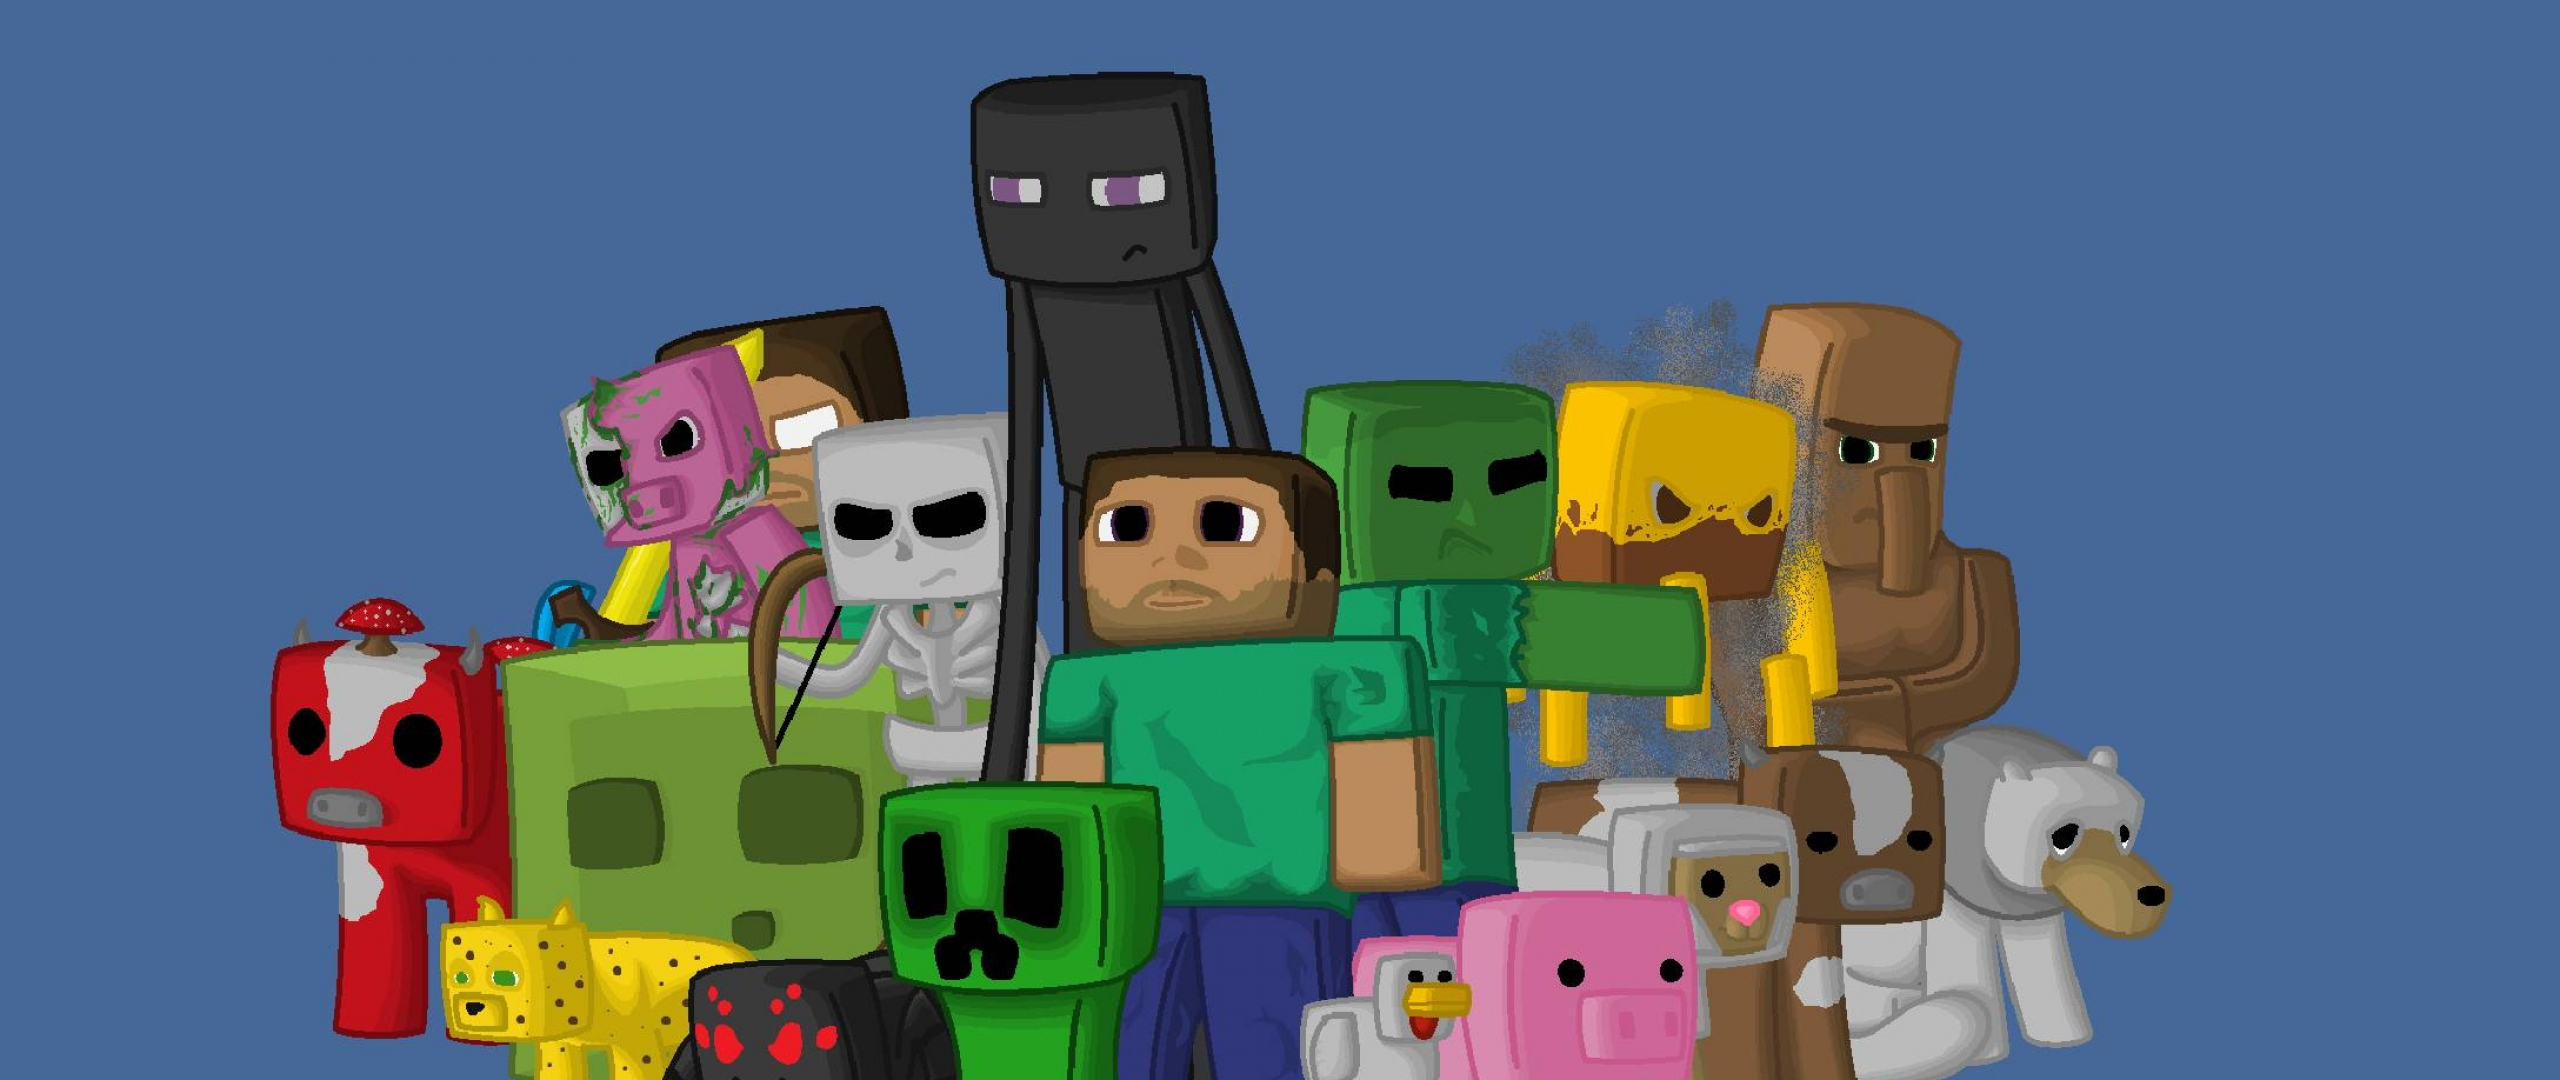 Download Wallpaper 2560x1080 Minecraft, Characters, Game, Pixels.